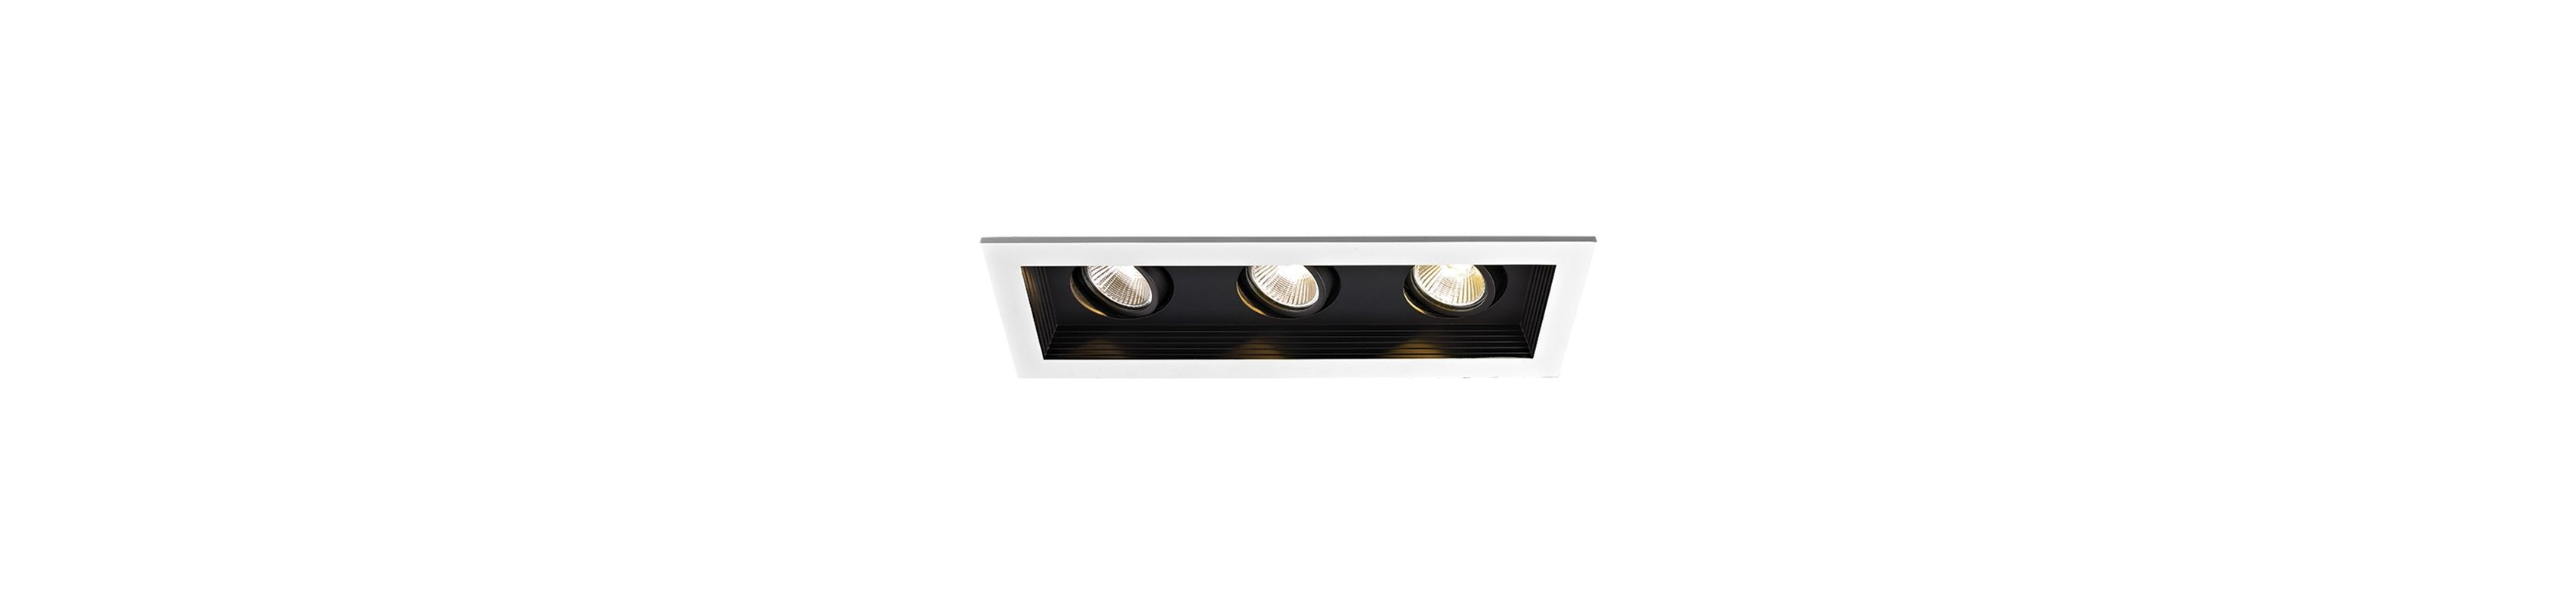 WAC Lighting MT-3LD311R-F30 Remodel 1 Light Mini LED Recessed Lighting